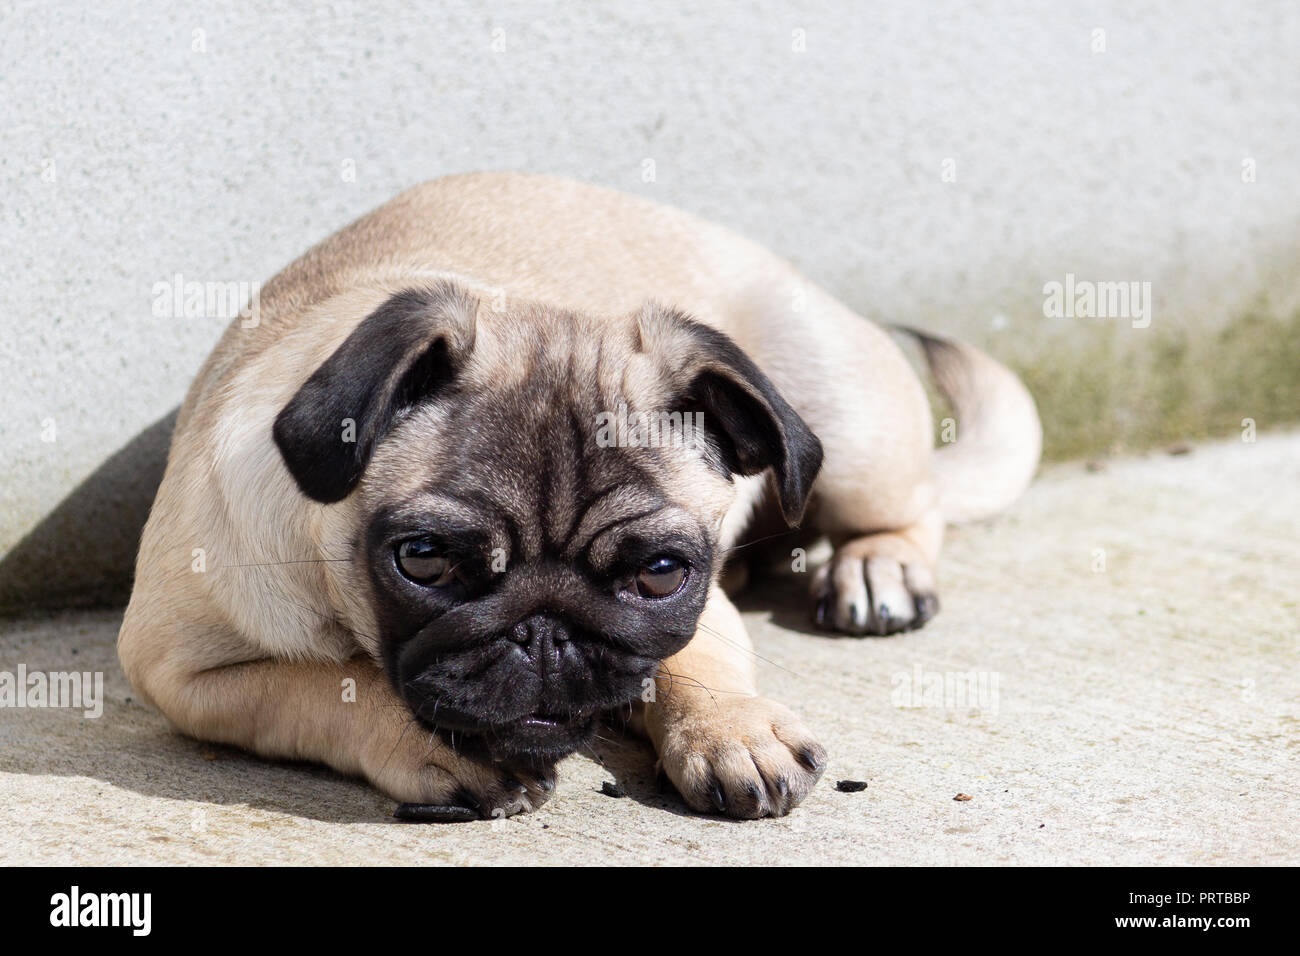 Cute Pug Puppy Lying Down - Stock Image